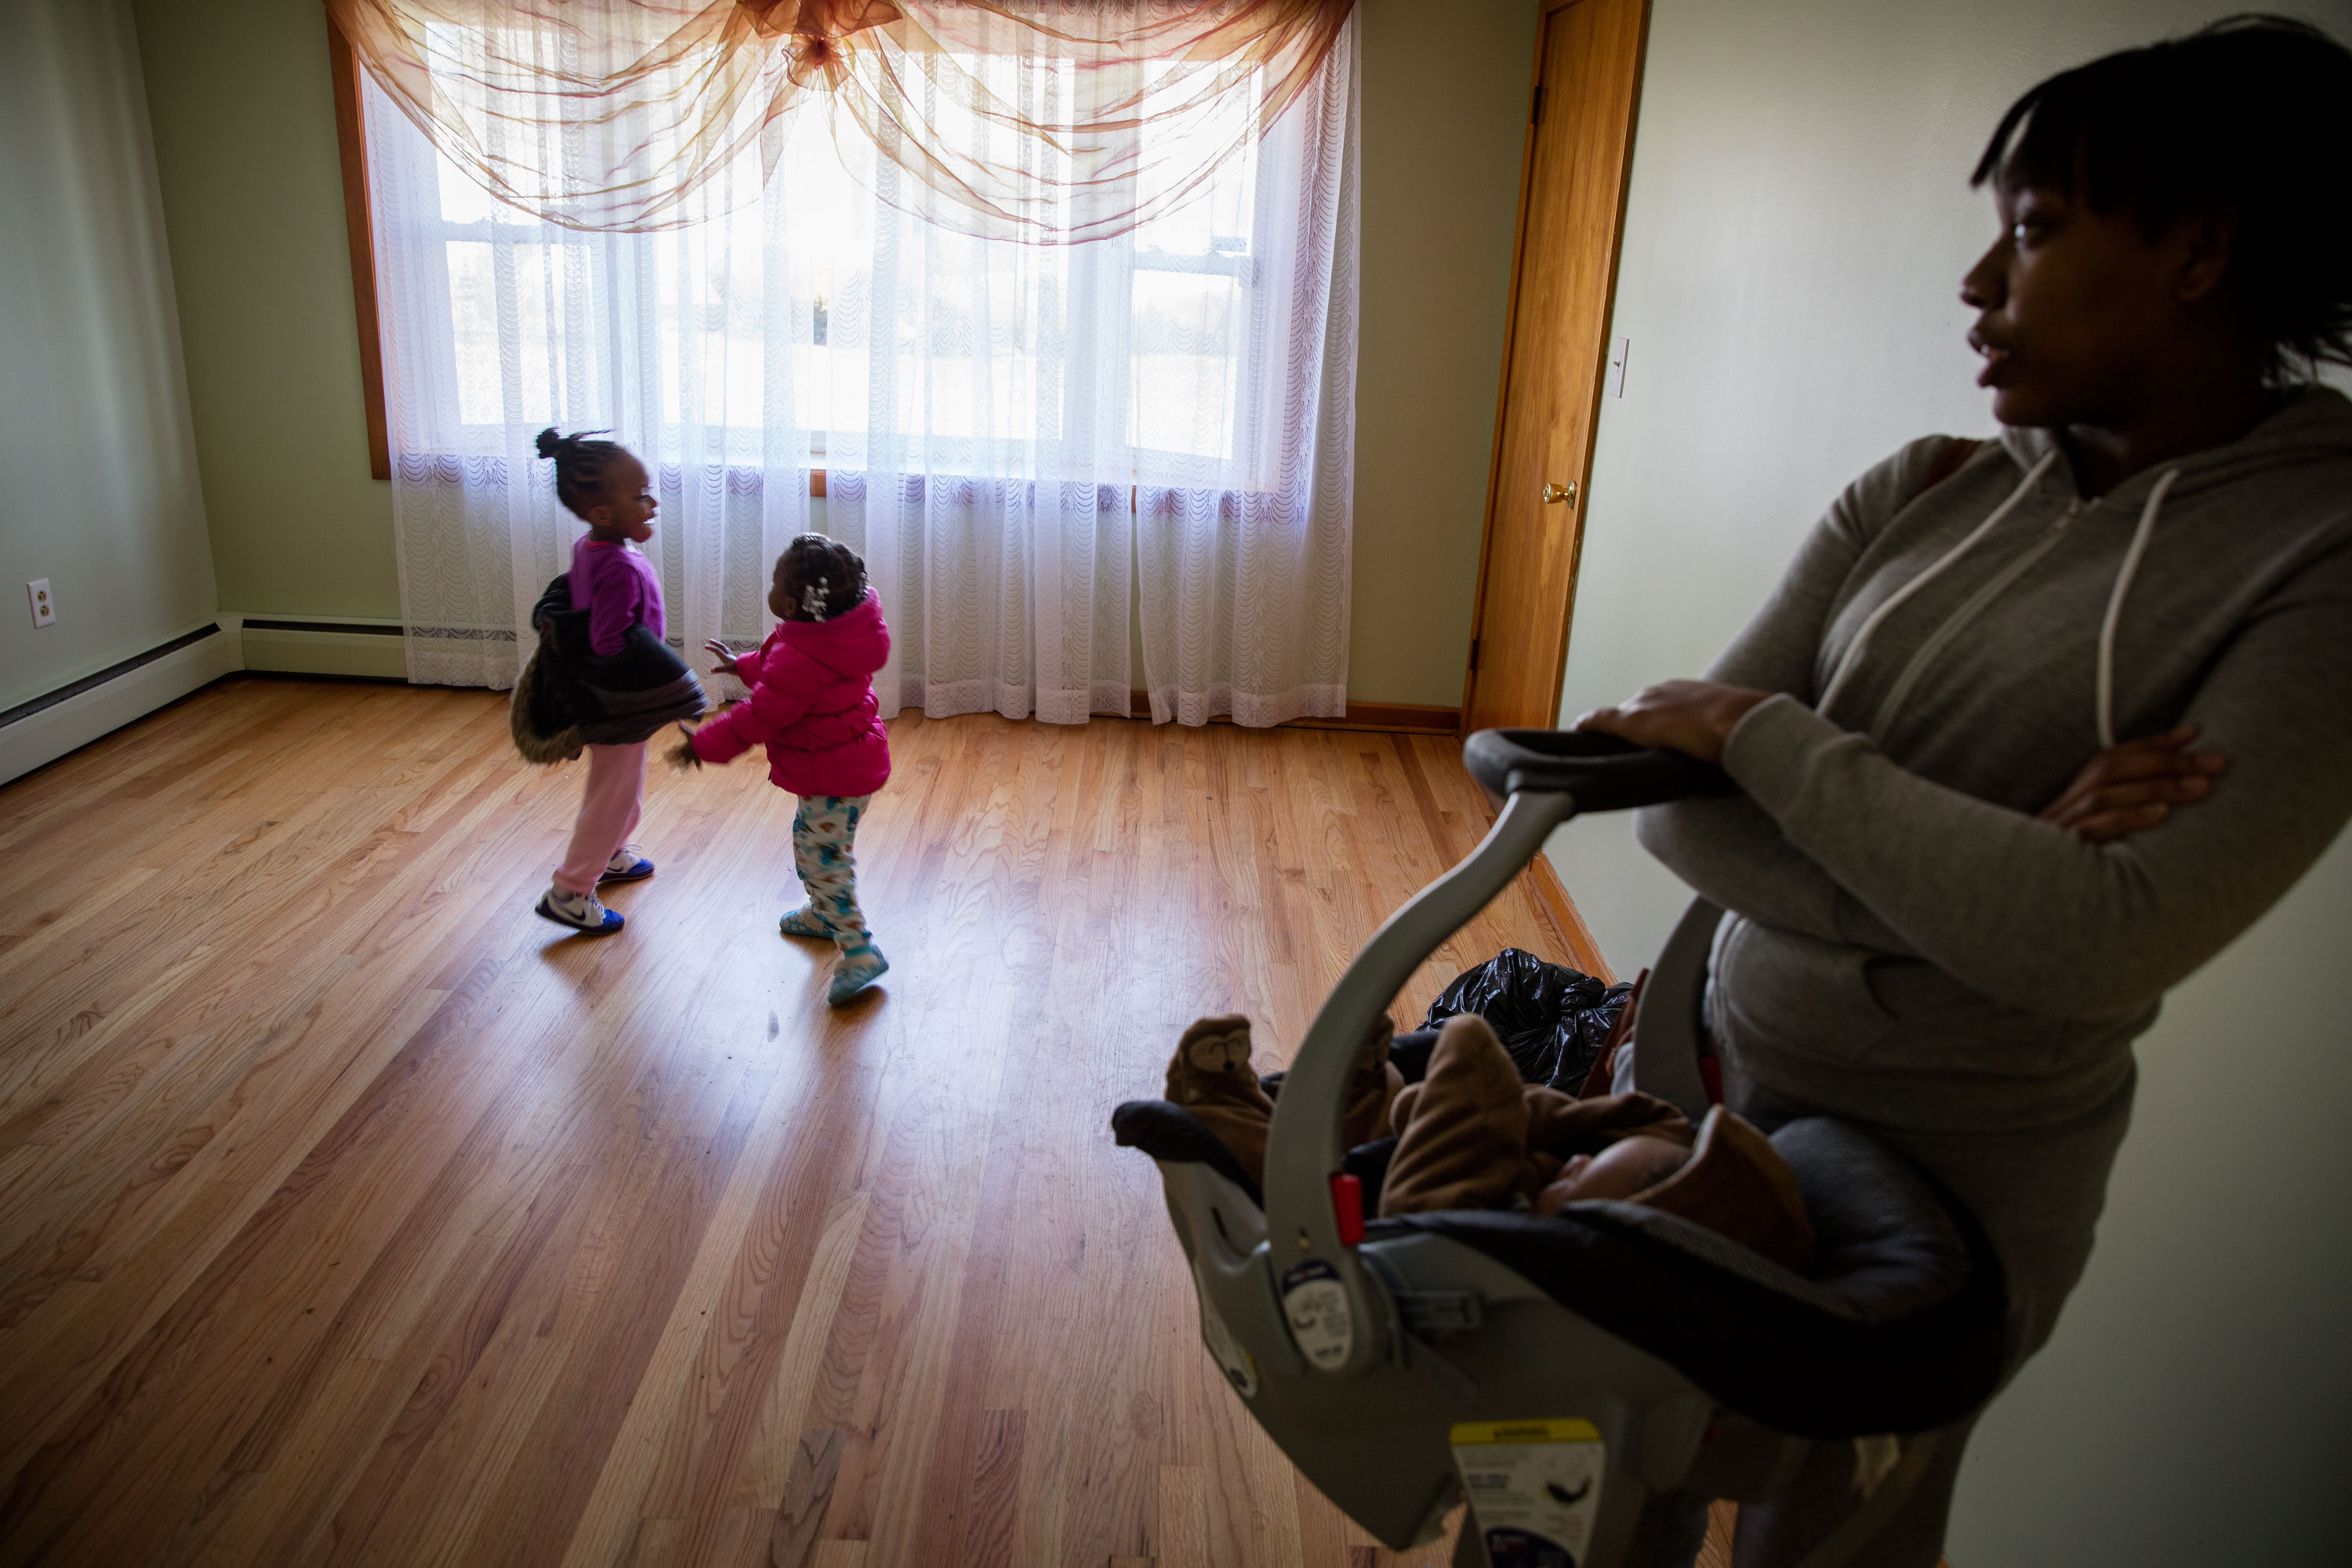 Supportive housing photo essay